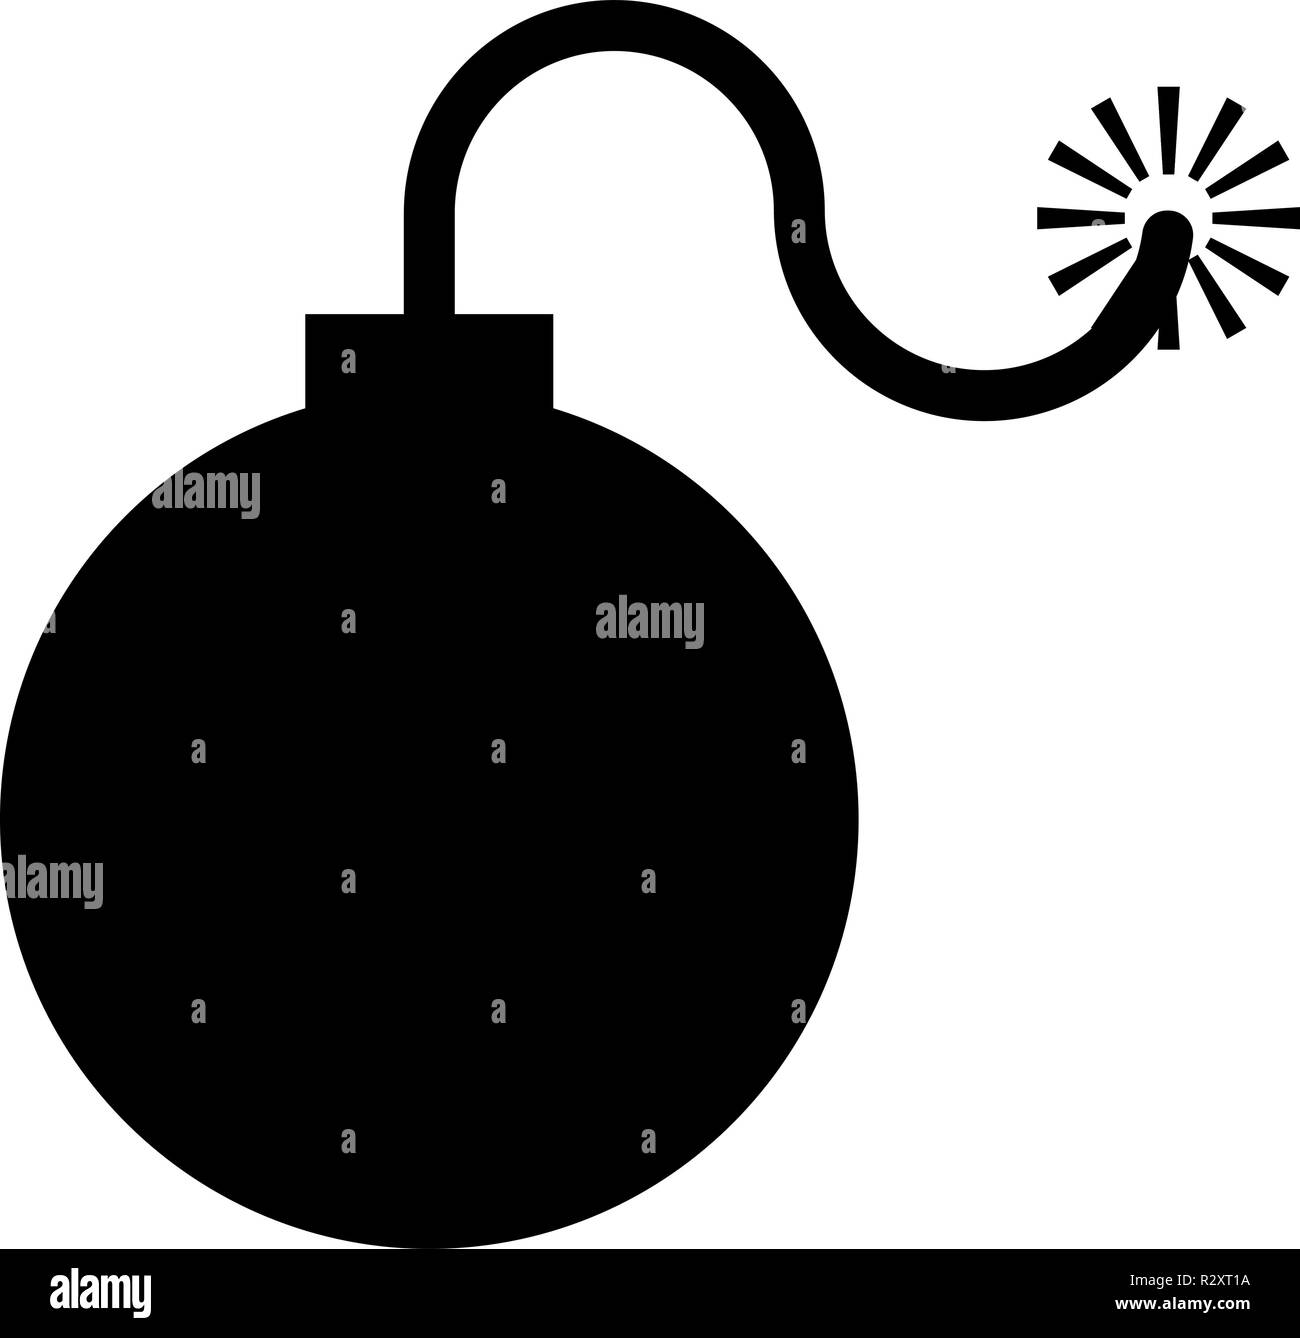 Bomb explosive military Anicent time bomb Weapon with fire spark concept advertising boom icon black color vector I flat style simple image - Stock Image